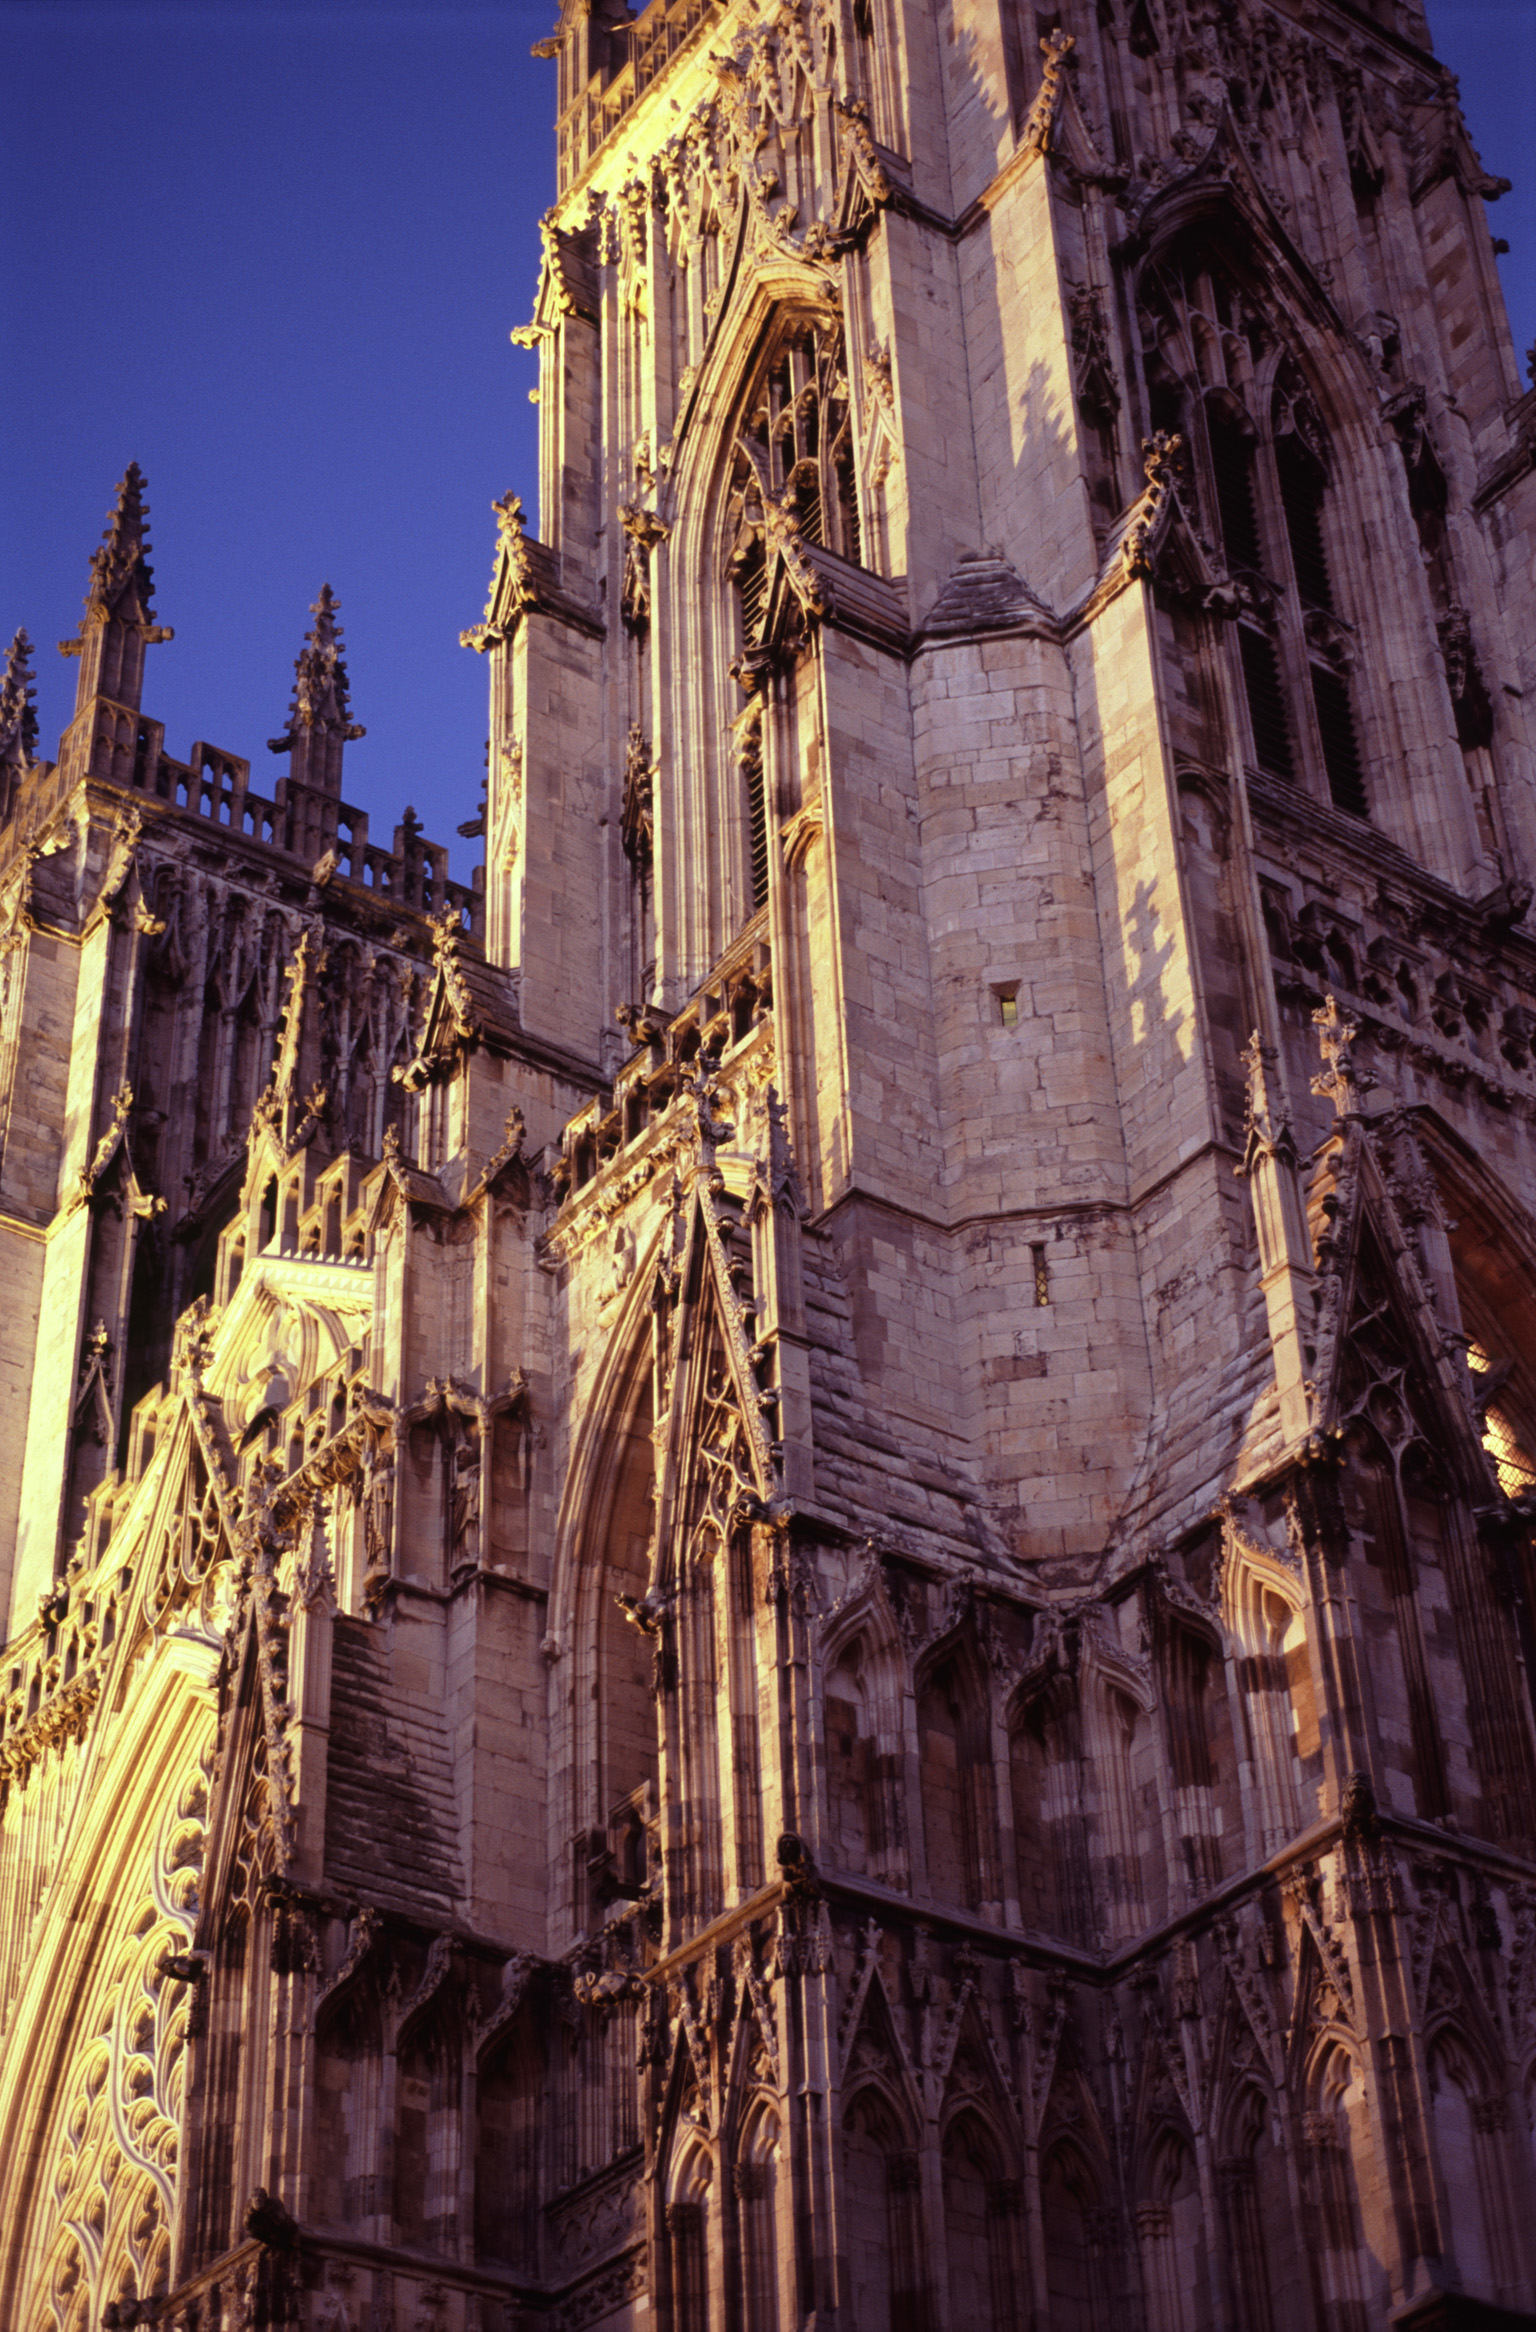 Architectural History of York Minster in York, England, Captured During Evening.